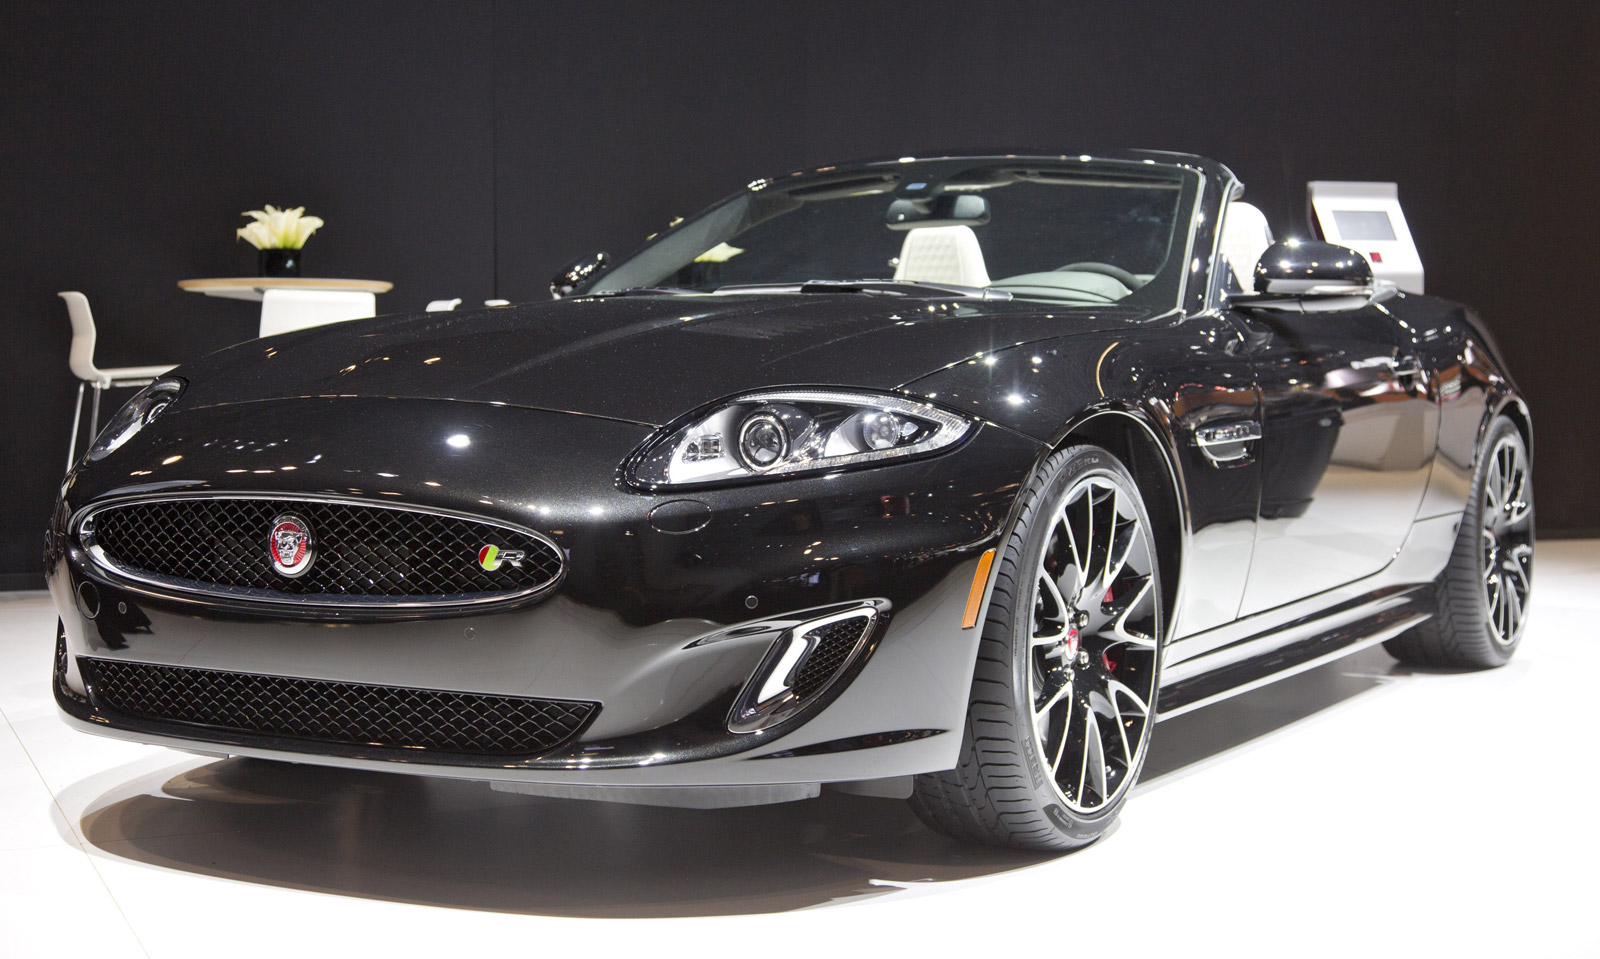 2019 Jaguar XK photo - 3